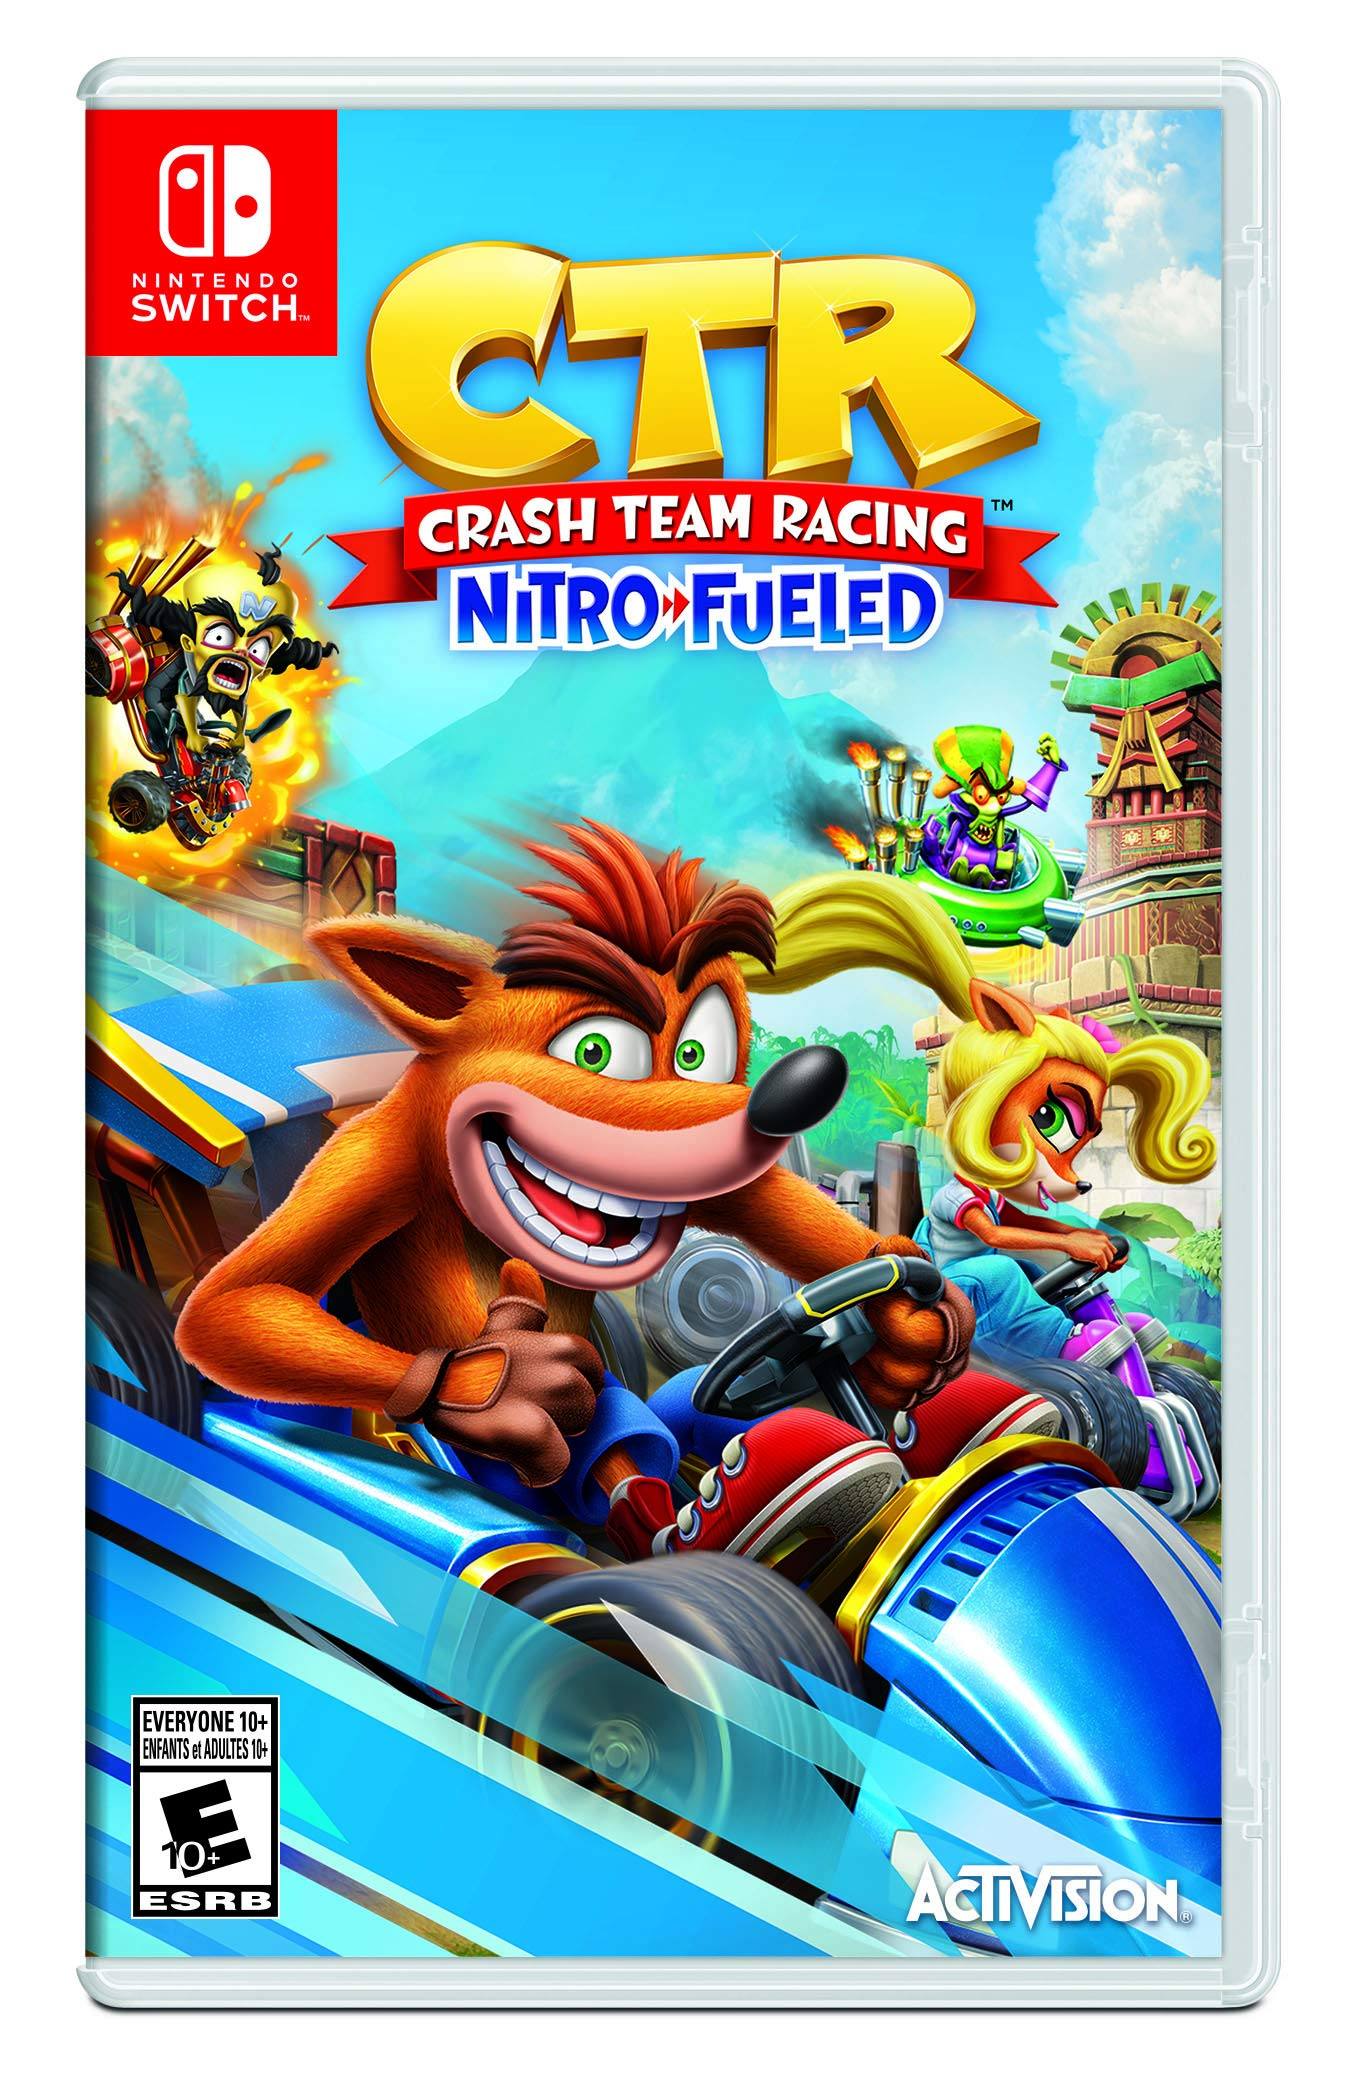 Nintendo Crash Team Racing Nitro-Fueled vídeo - Juego (Nintendo Switch, Racing, Modo multijugador, E10 + (Everyone 10 +)): Amazon.es: Videojuegos